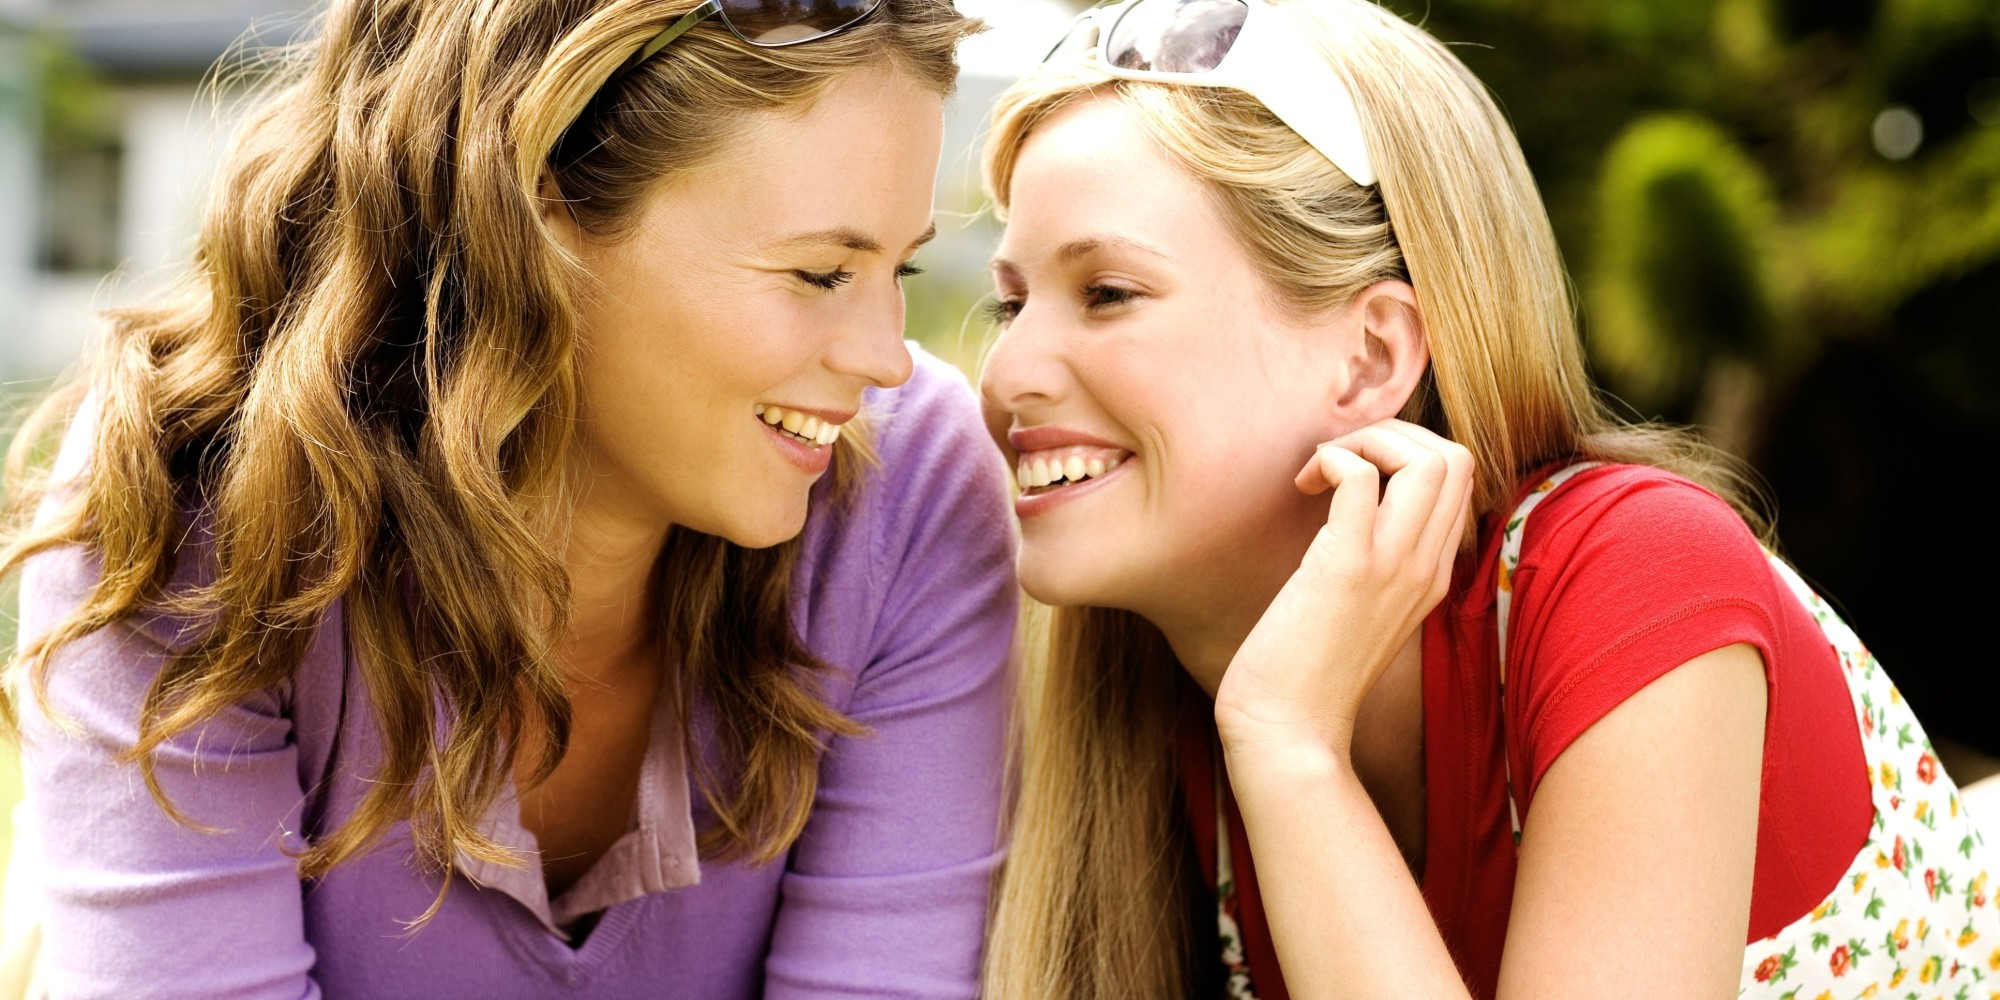 2 young smiling women lying on grass, looking at each other